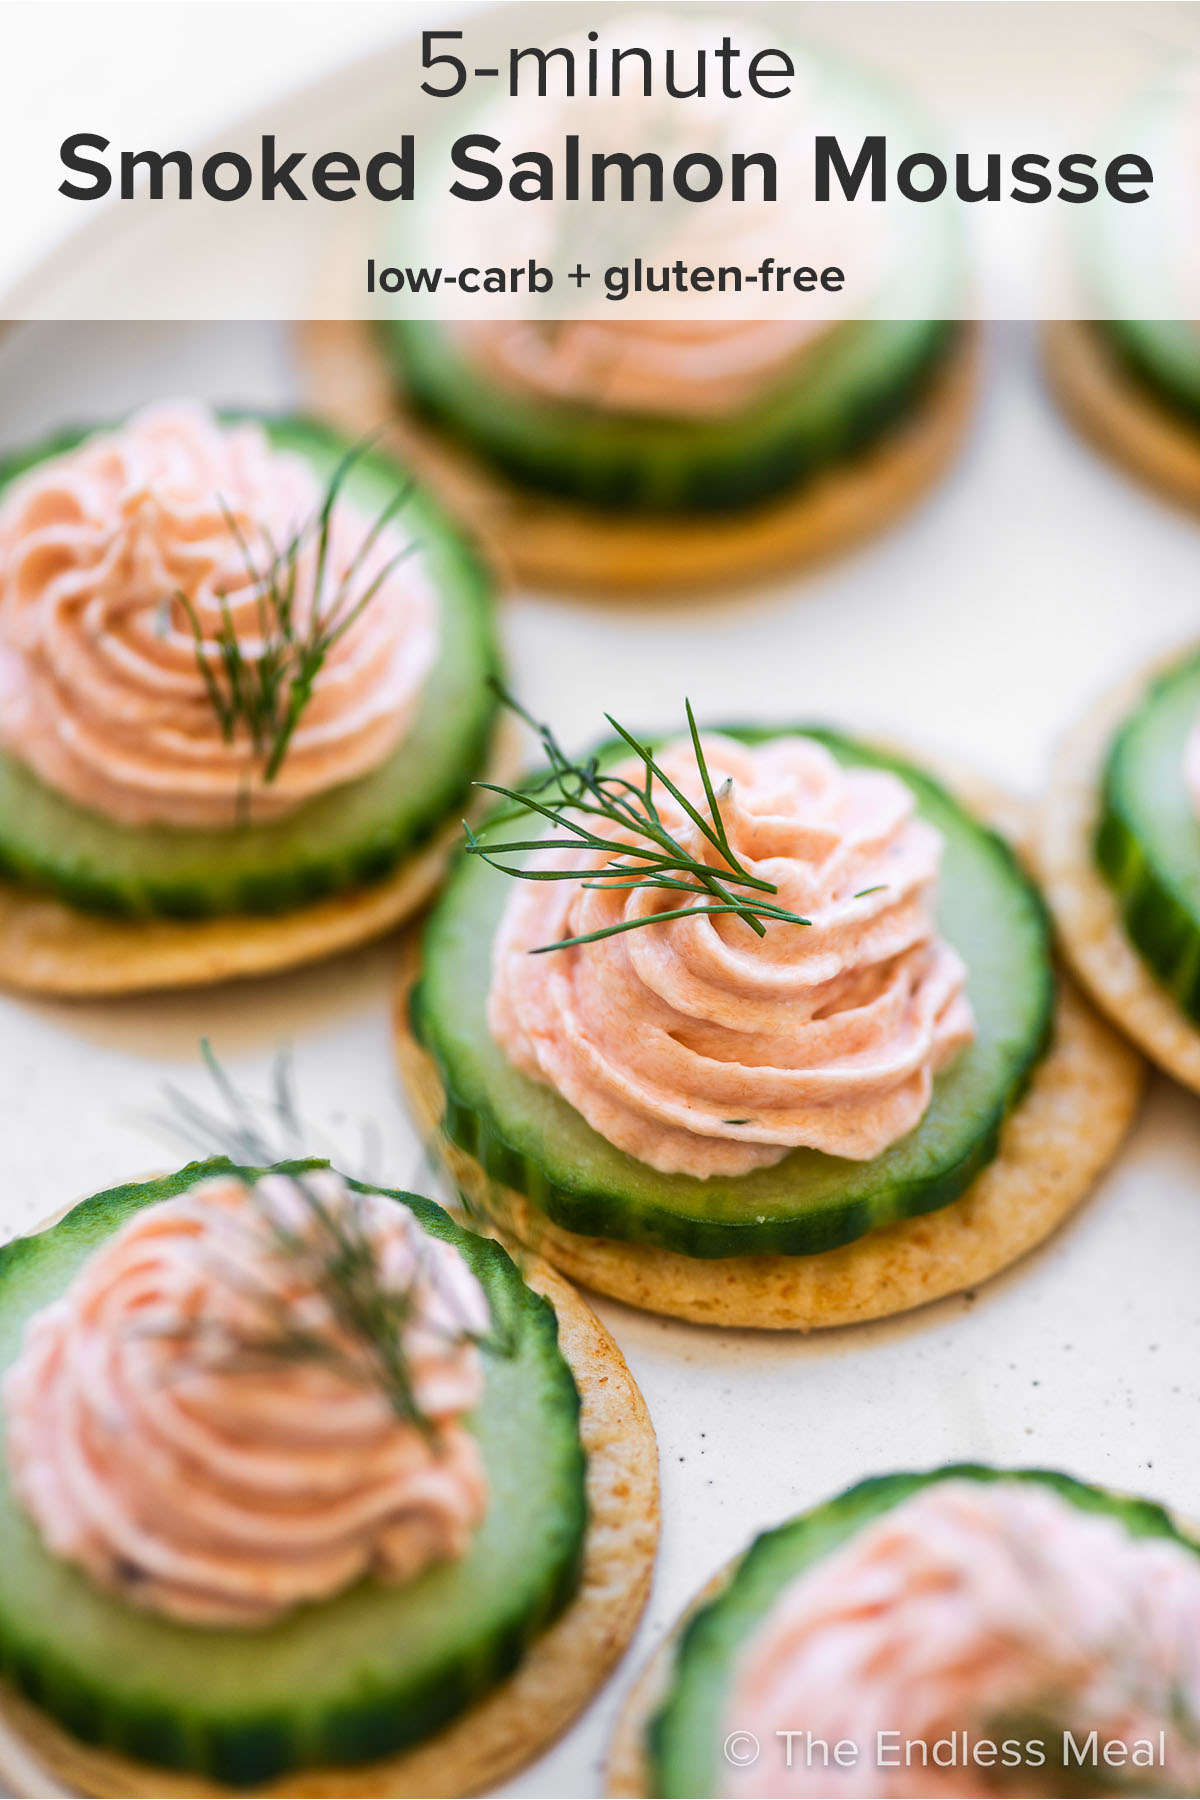 Smoked Salmon Mousse on crackers and cucumbers with the recipe title on top of the picture.